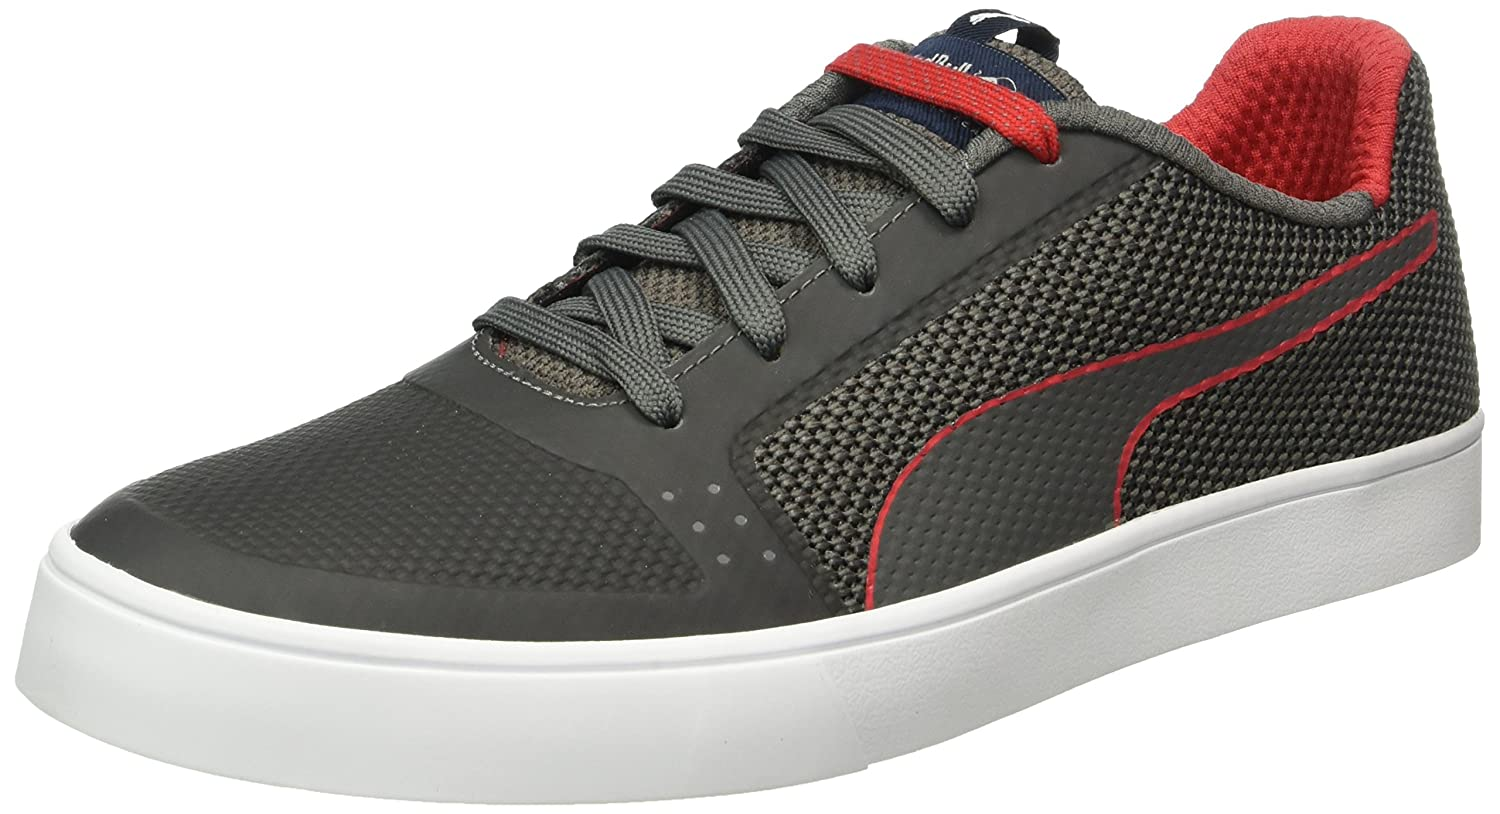 TALLA 44.5 EU. Puma RBR Wings Vulc, Zapatillas Unisex Adulto